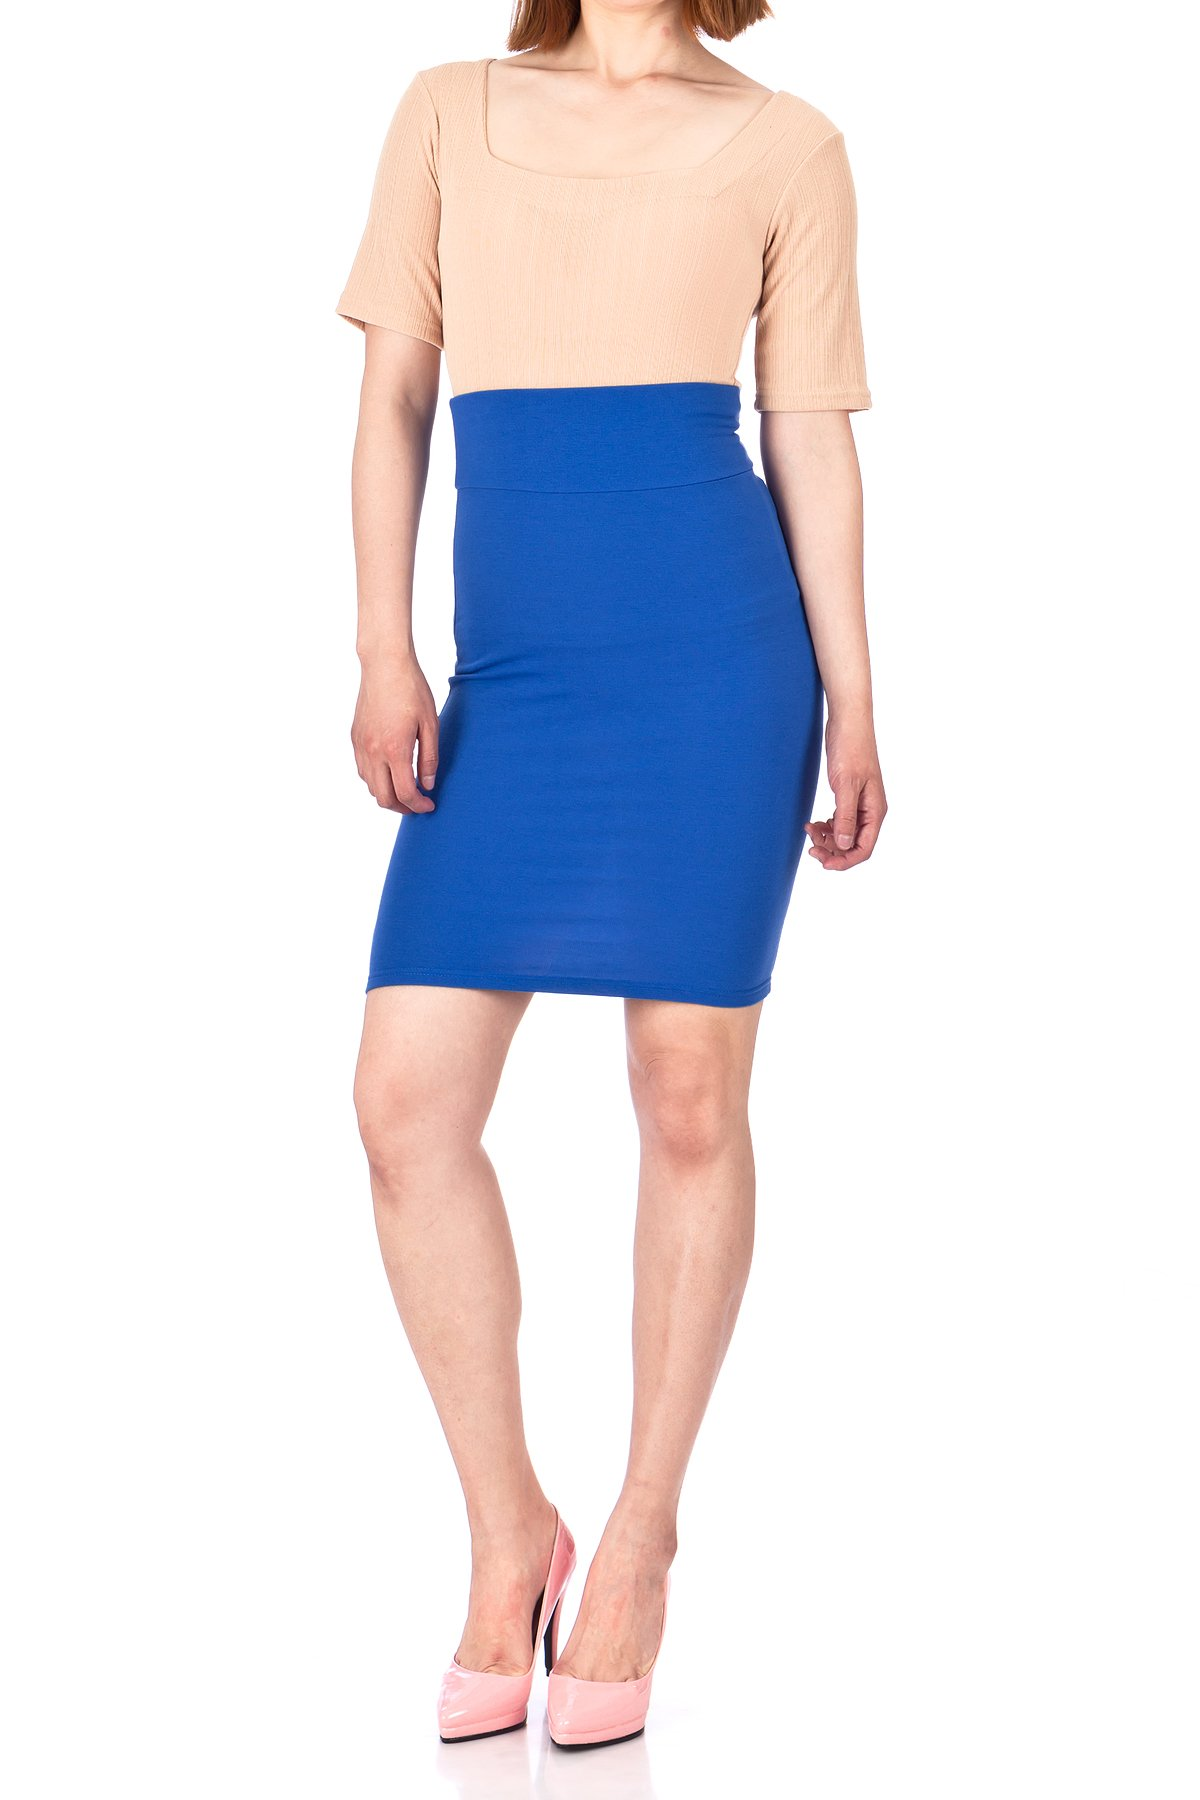 Every Occasion Stretch Pull on Wide High Waist Bodycon Pencil Knee Length Midi Skirt Royal Blue 02